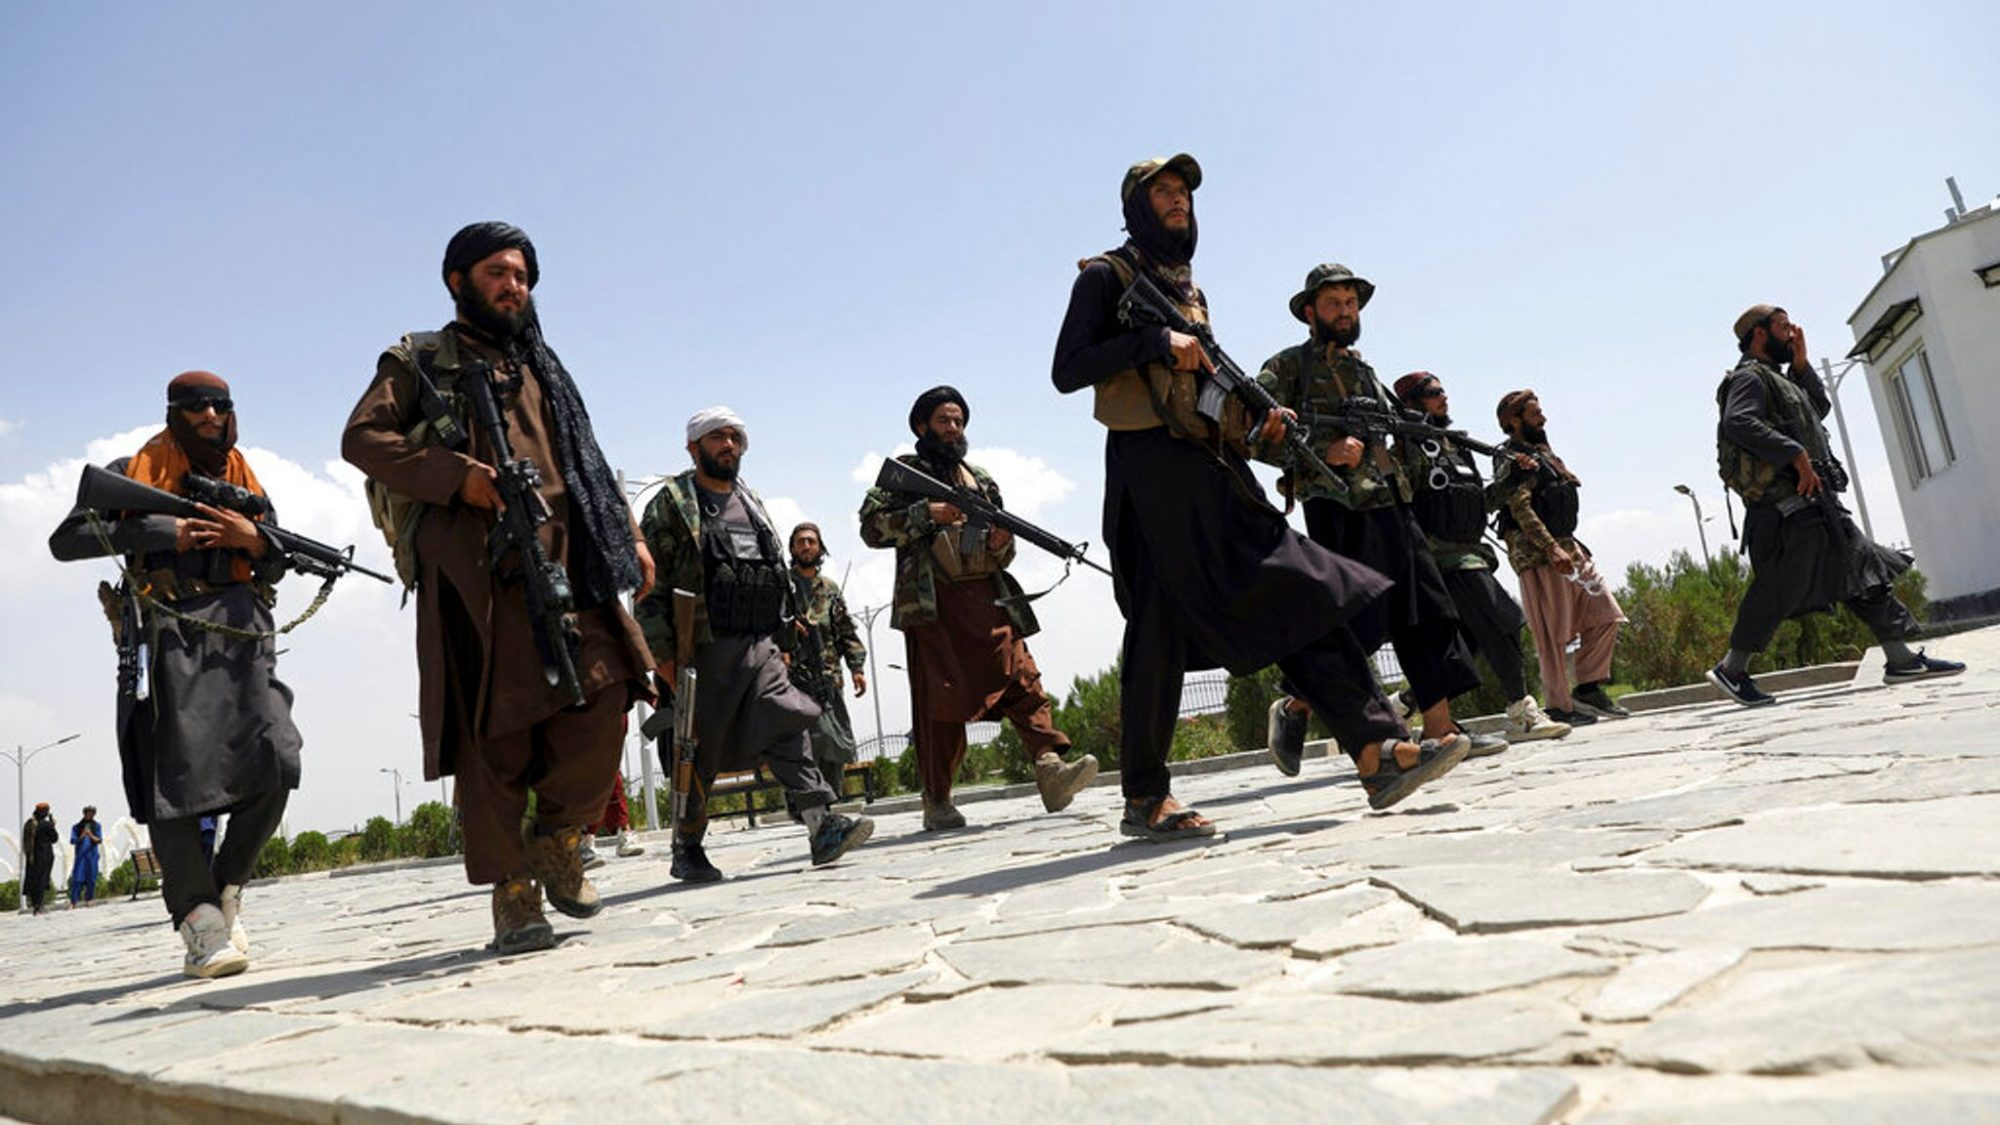 Group of Taliban fighters pictured in combat gear and carrying guns walk the streets of Kabul.